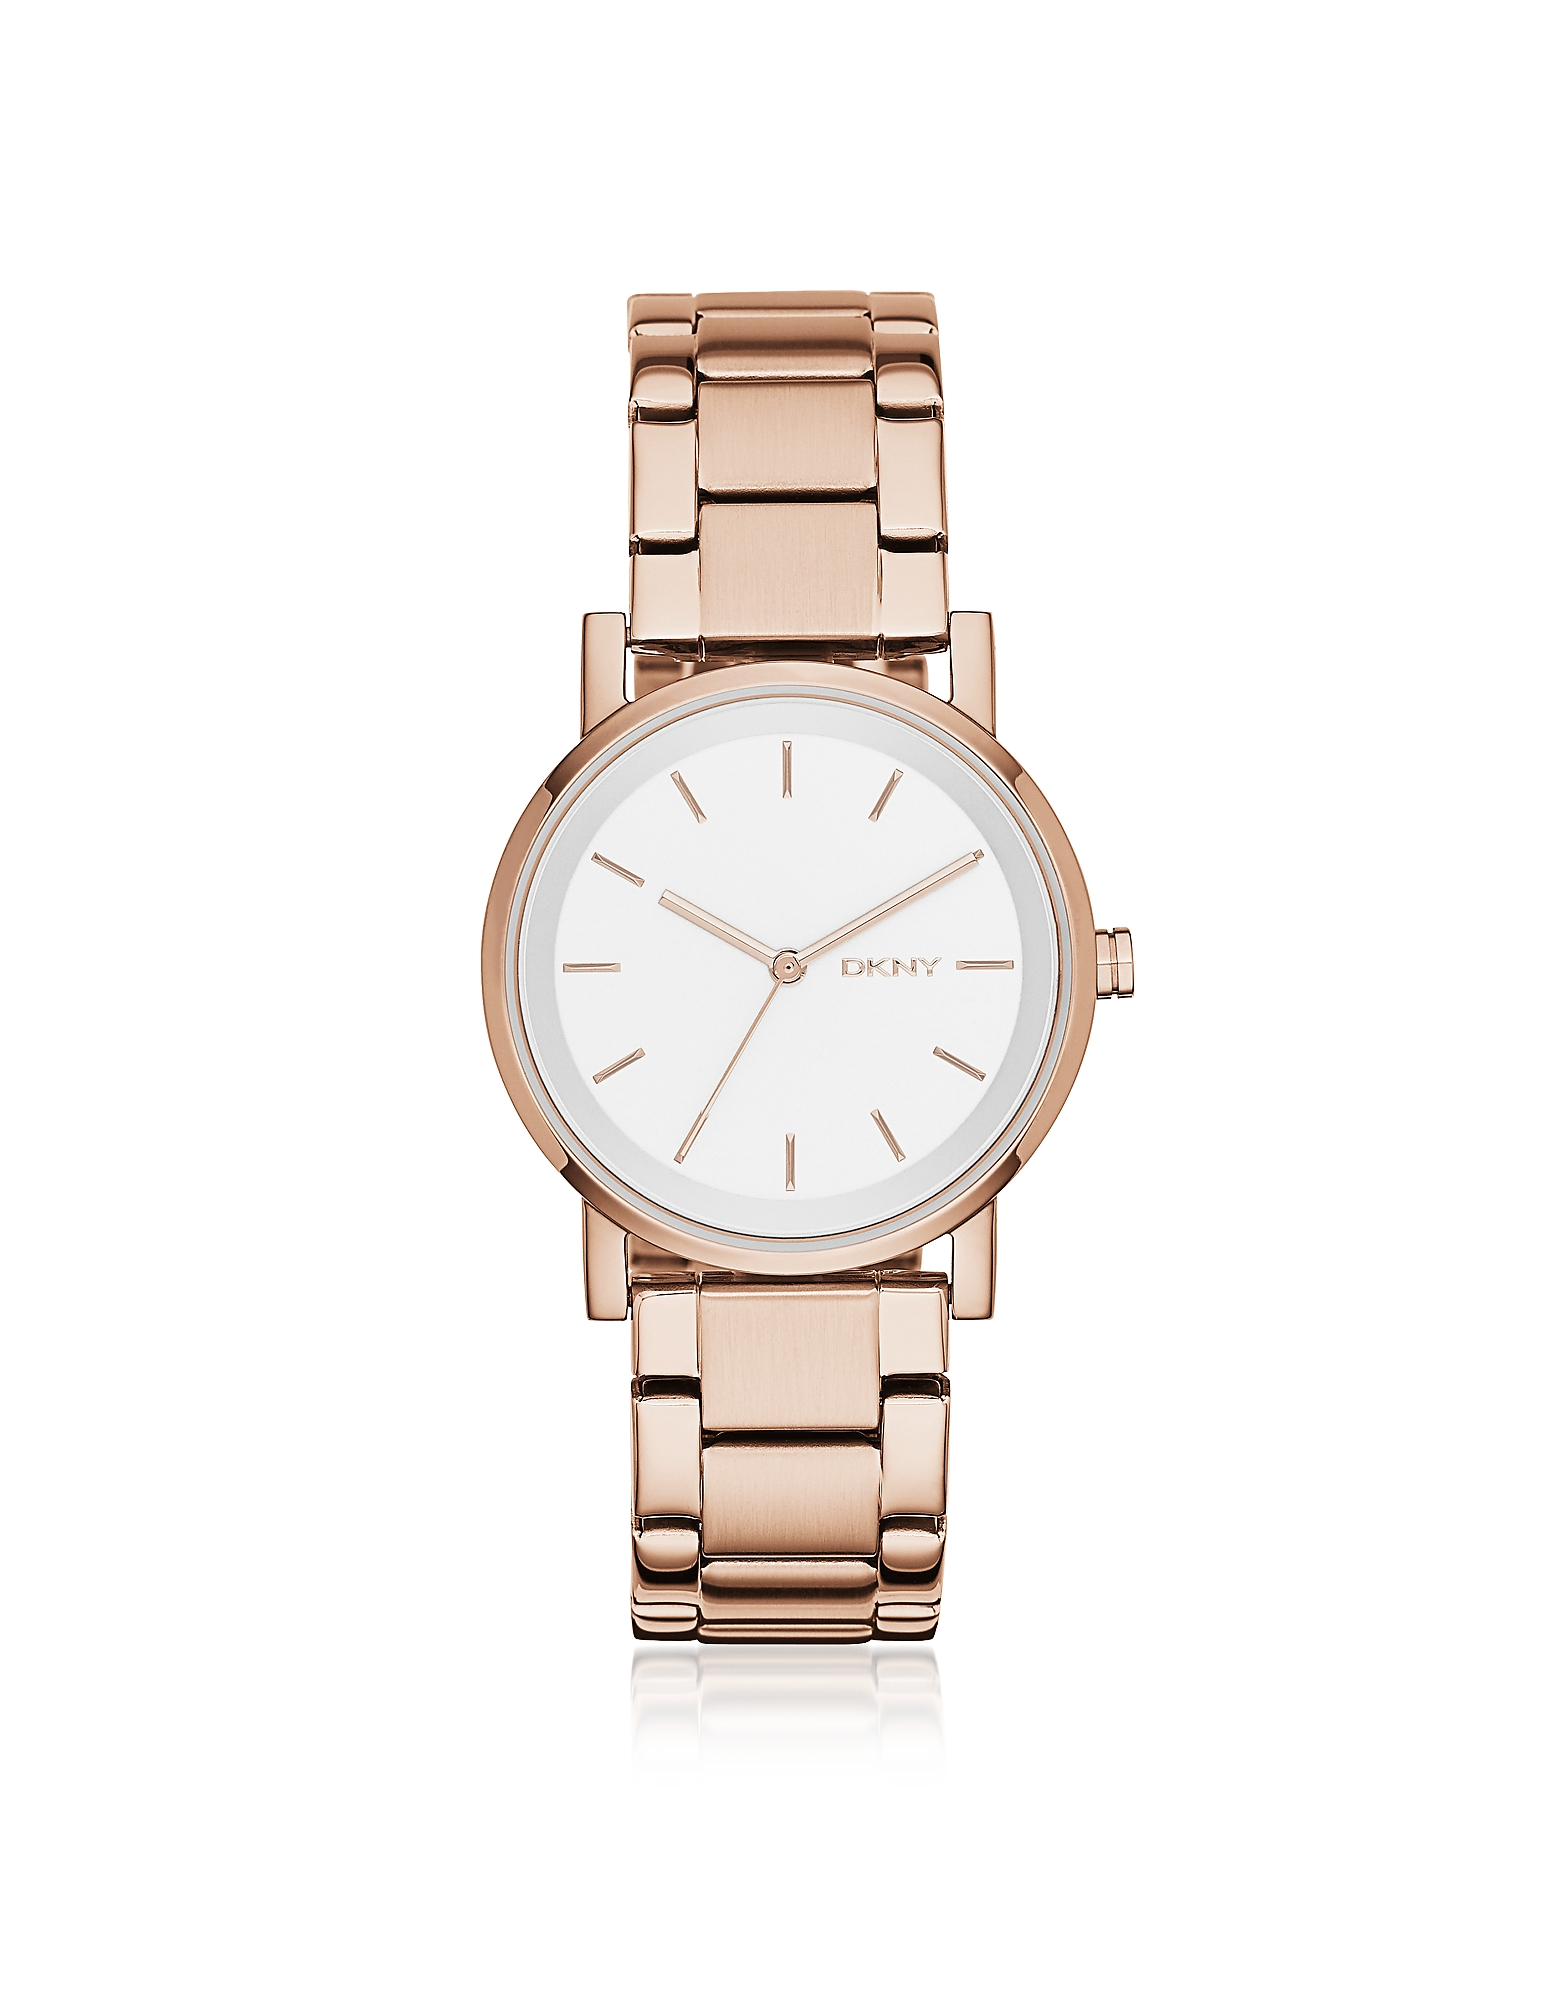 DKNY Women's Watches, Soho Women's Watch